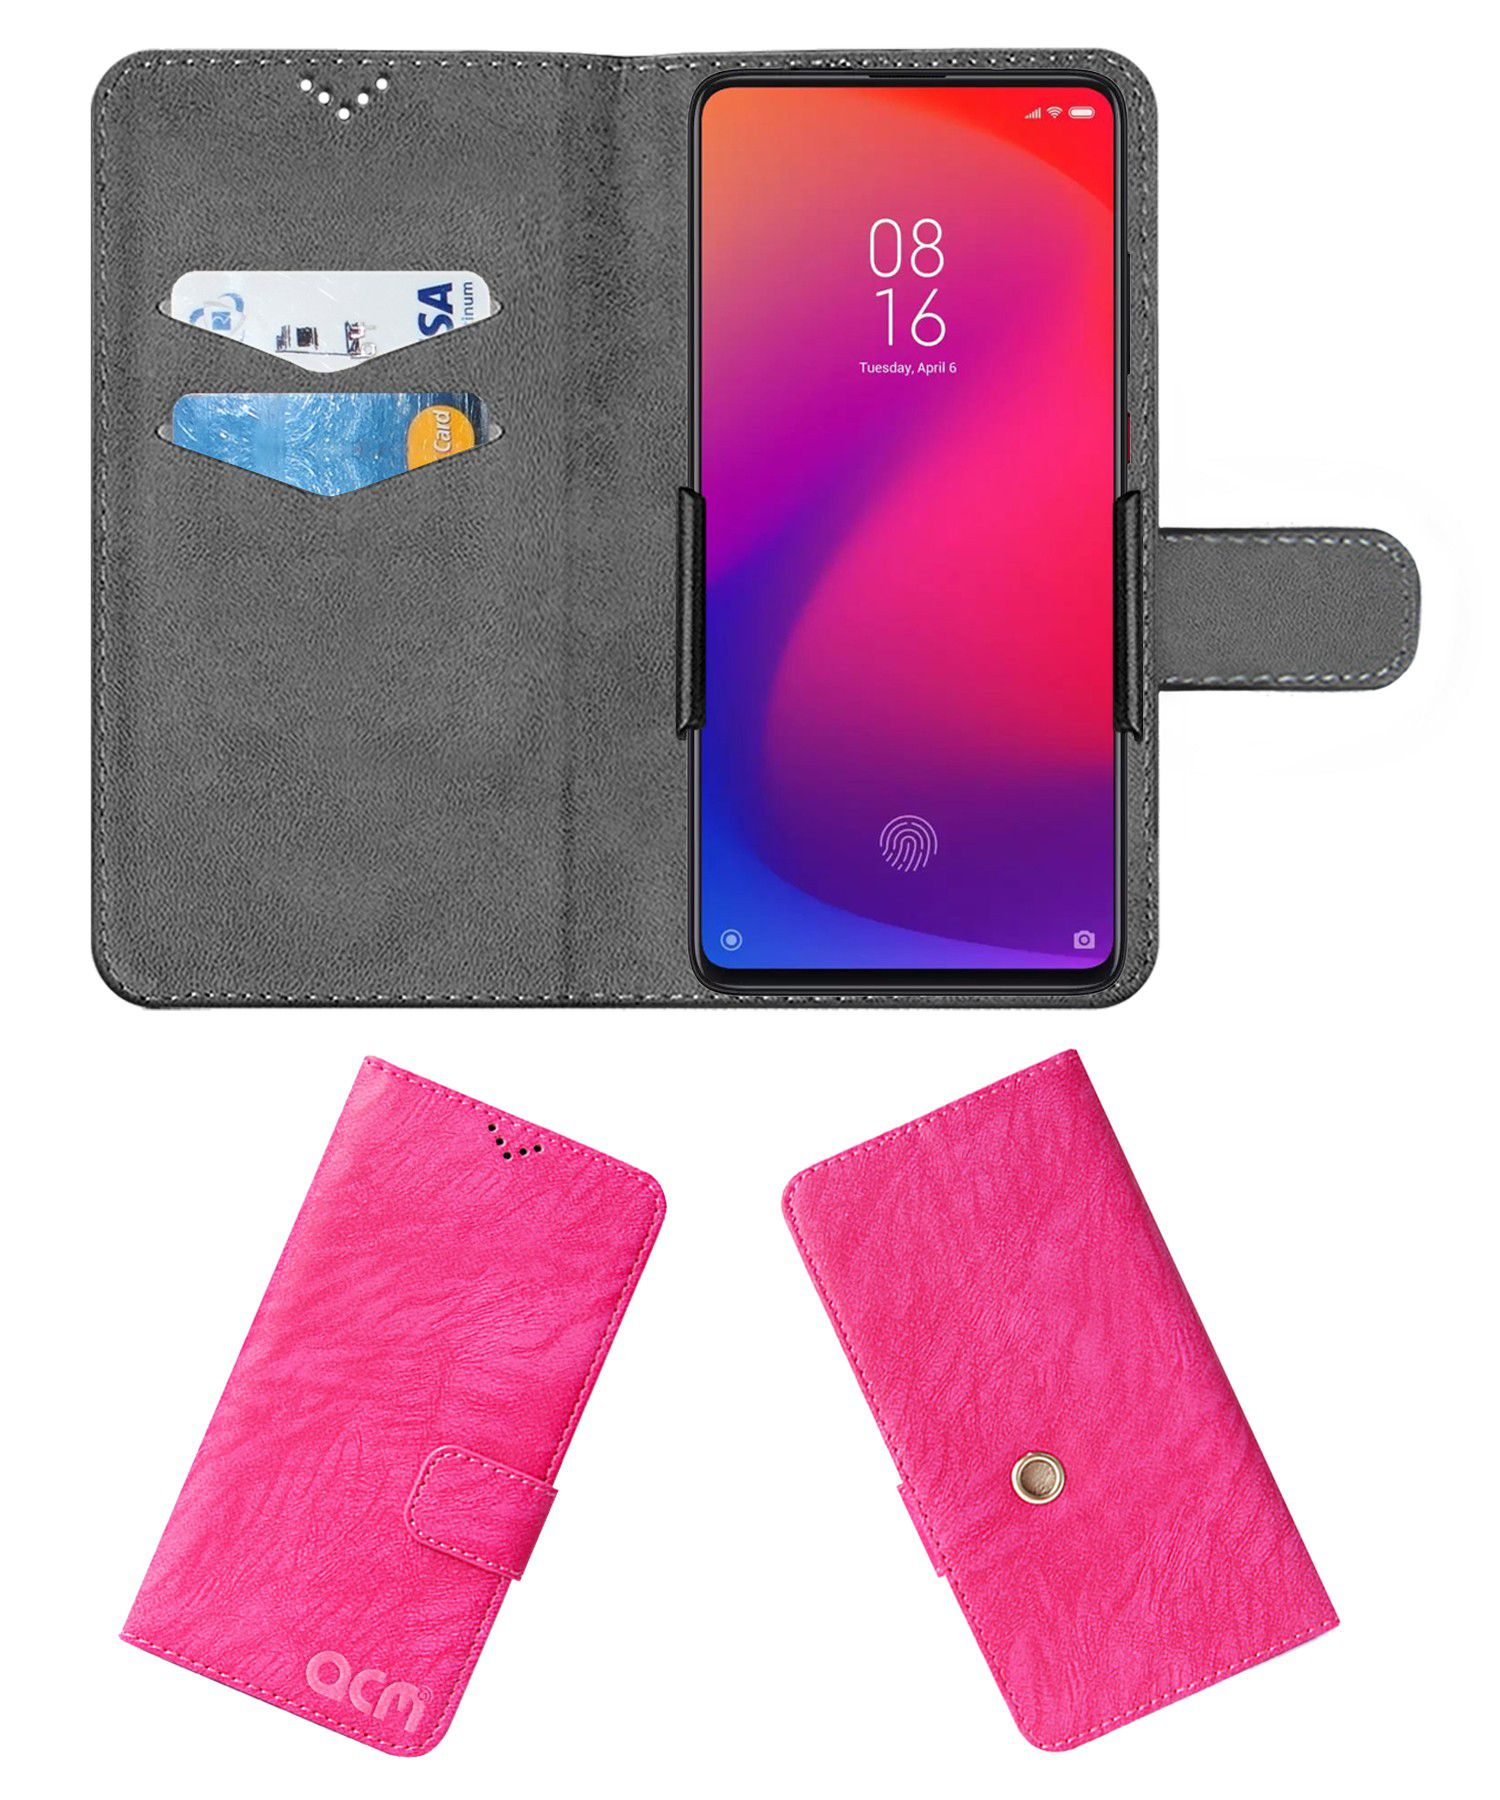 XIAOMI REDMI K20 PRO Flip Cover by ACM - Pink Clip holder to hold your mobile securely